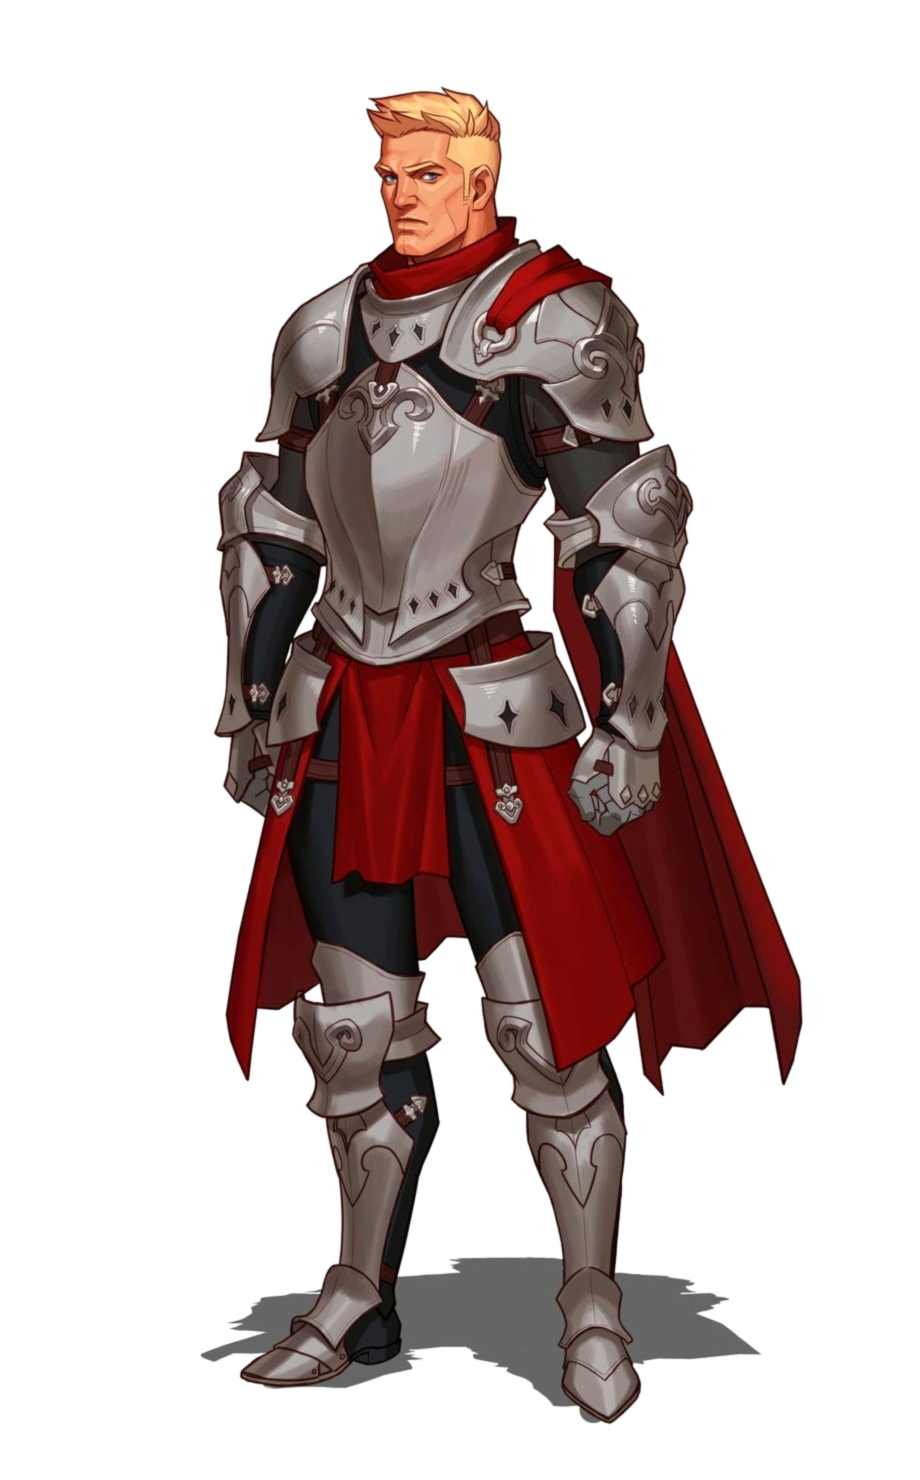 Male Human Fighter Knight Cavalier Paladin in Plate Armor